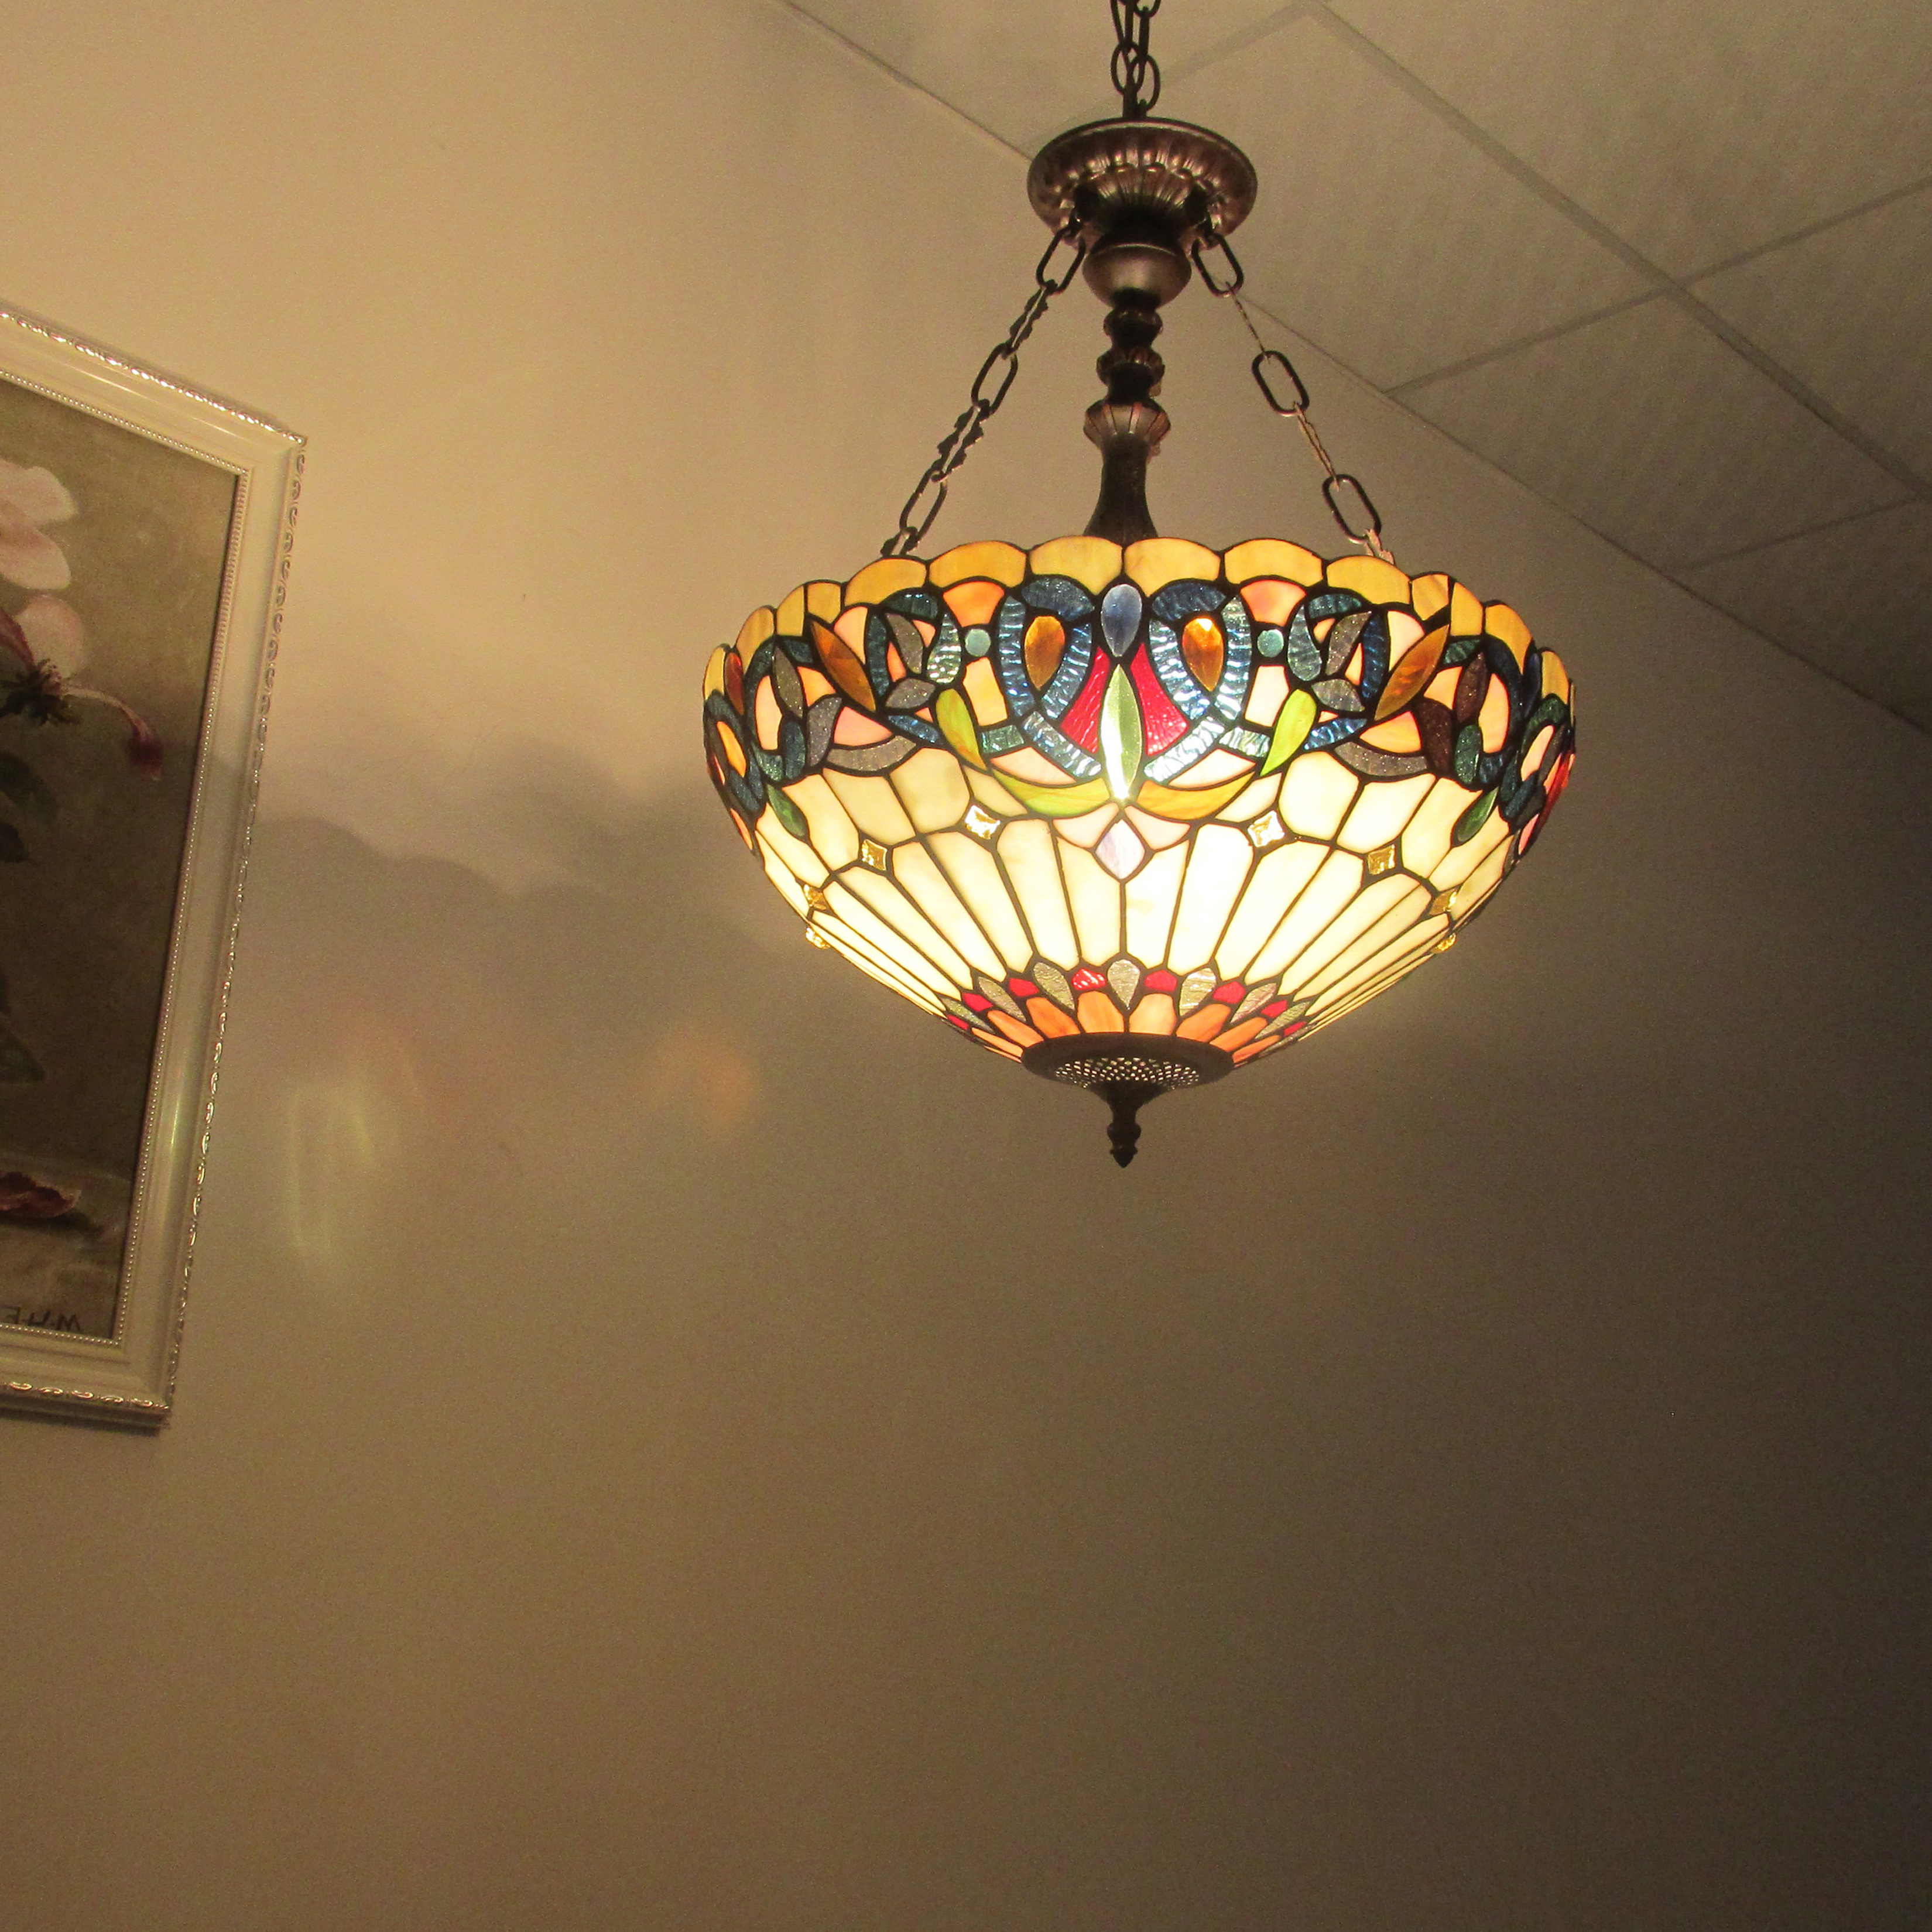 Latest Queener 5 Piece Dining Sets Throughout Astoria Grand Queener 3 Light Bowl Pendant (View 12 of 25)